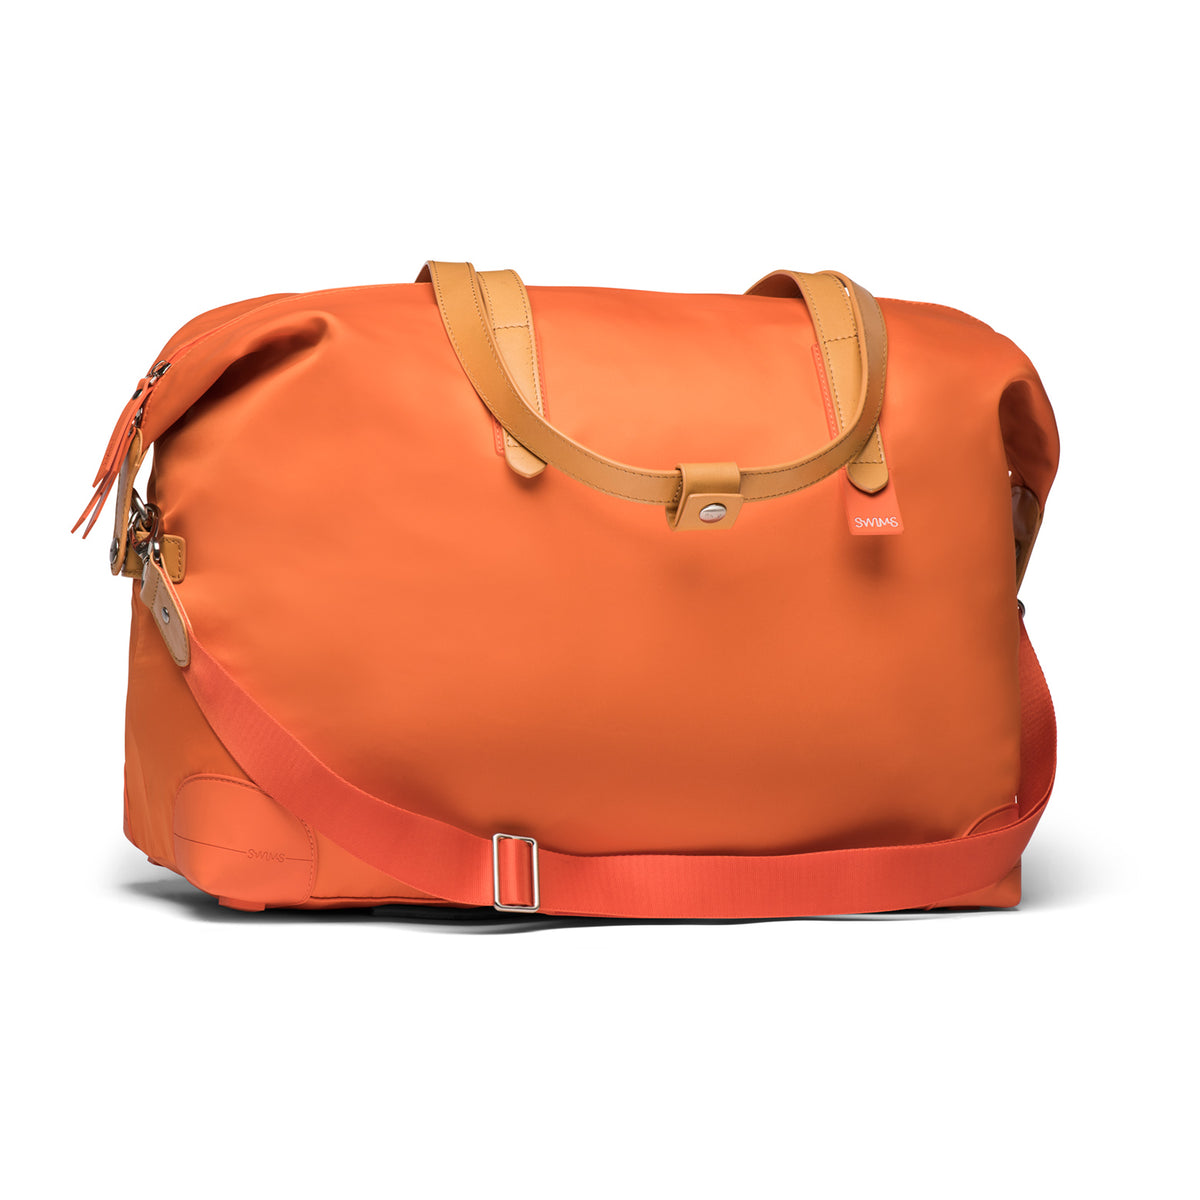 48 Hour Holdall - background::white,variant::Swims Orange